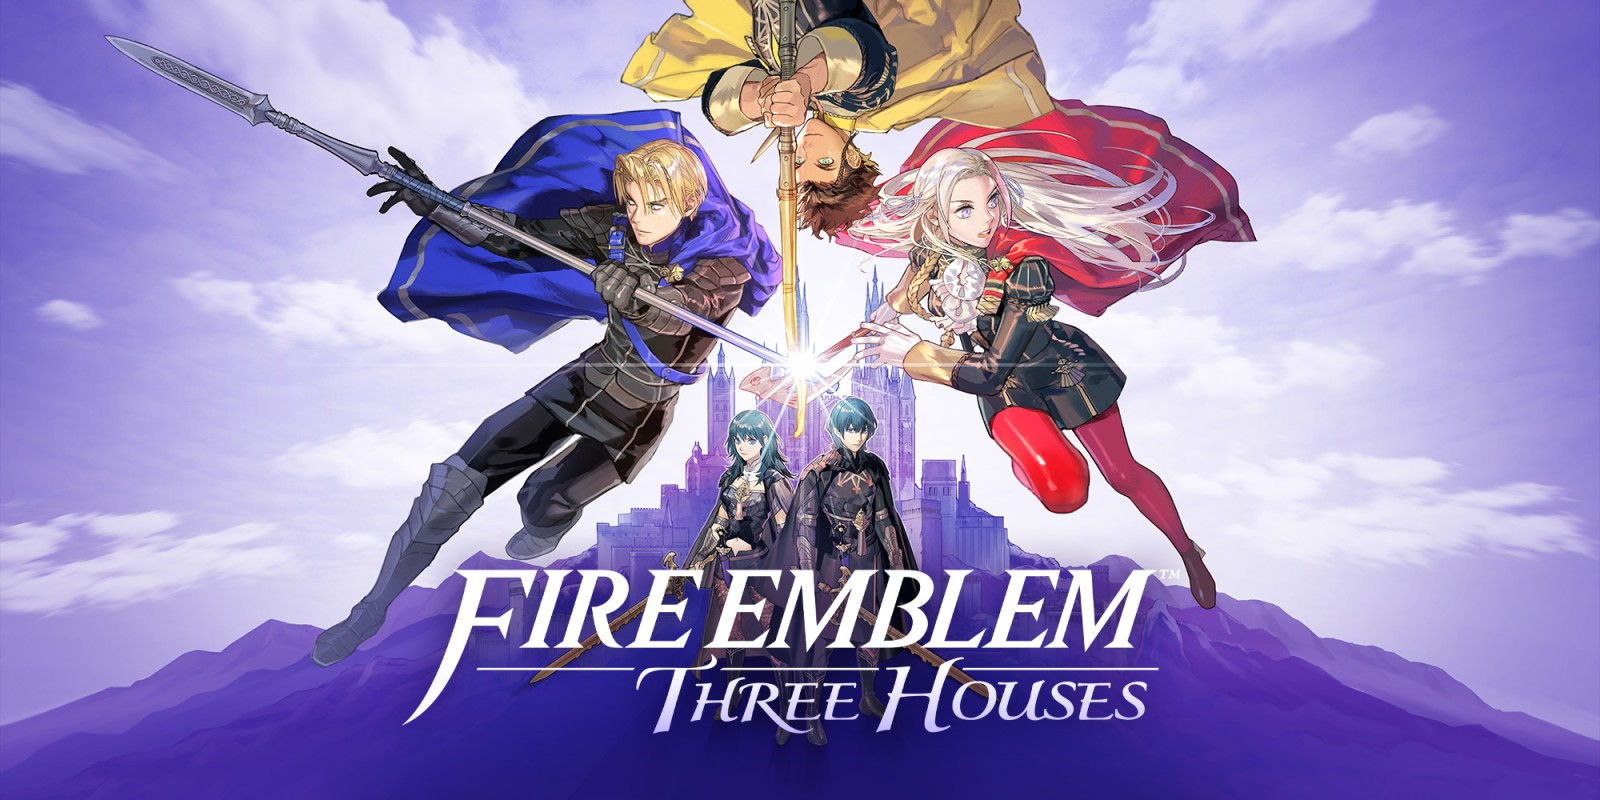 H2x1_NSwitch_FireEmblemThreeHouses_image